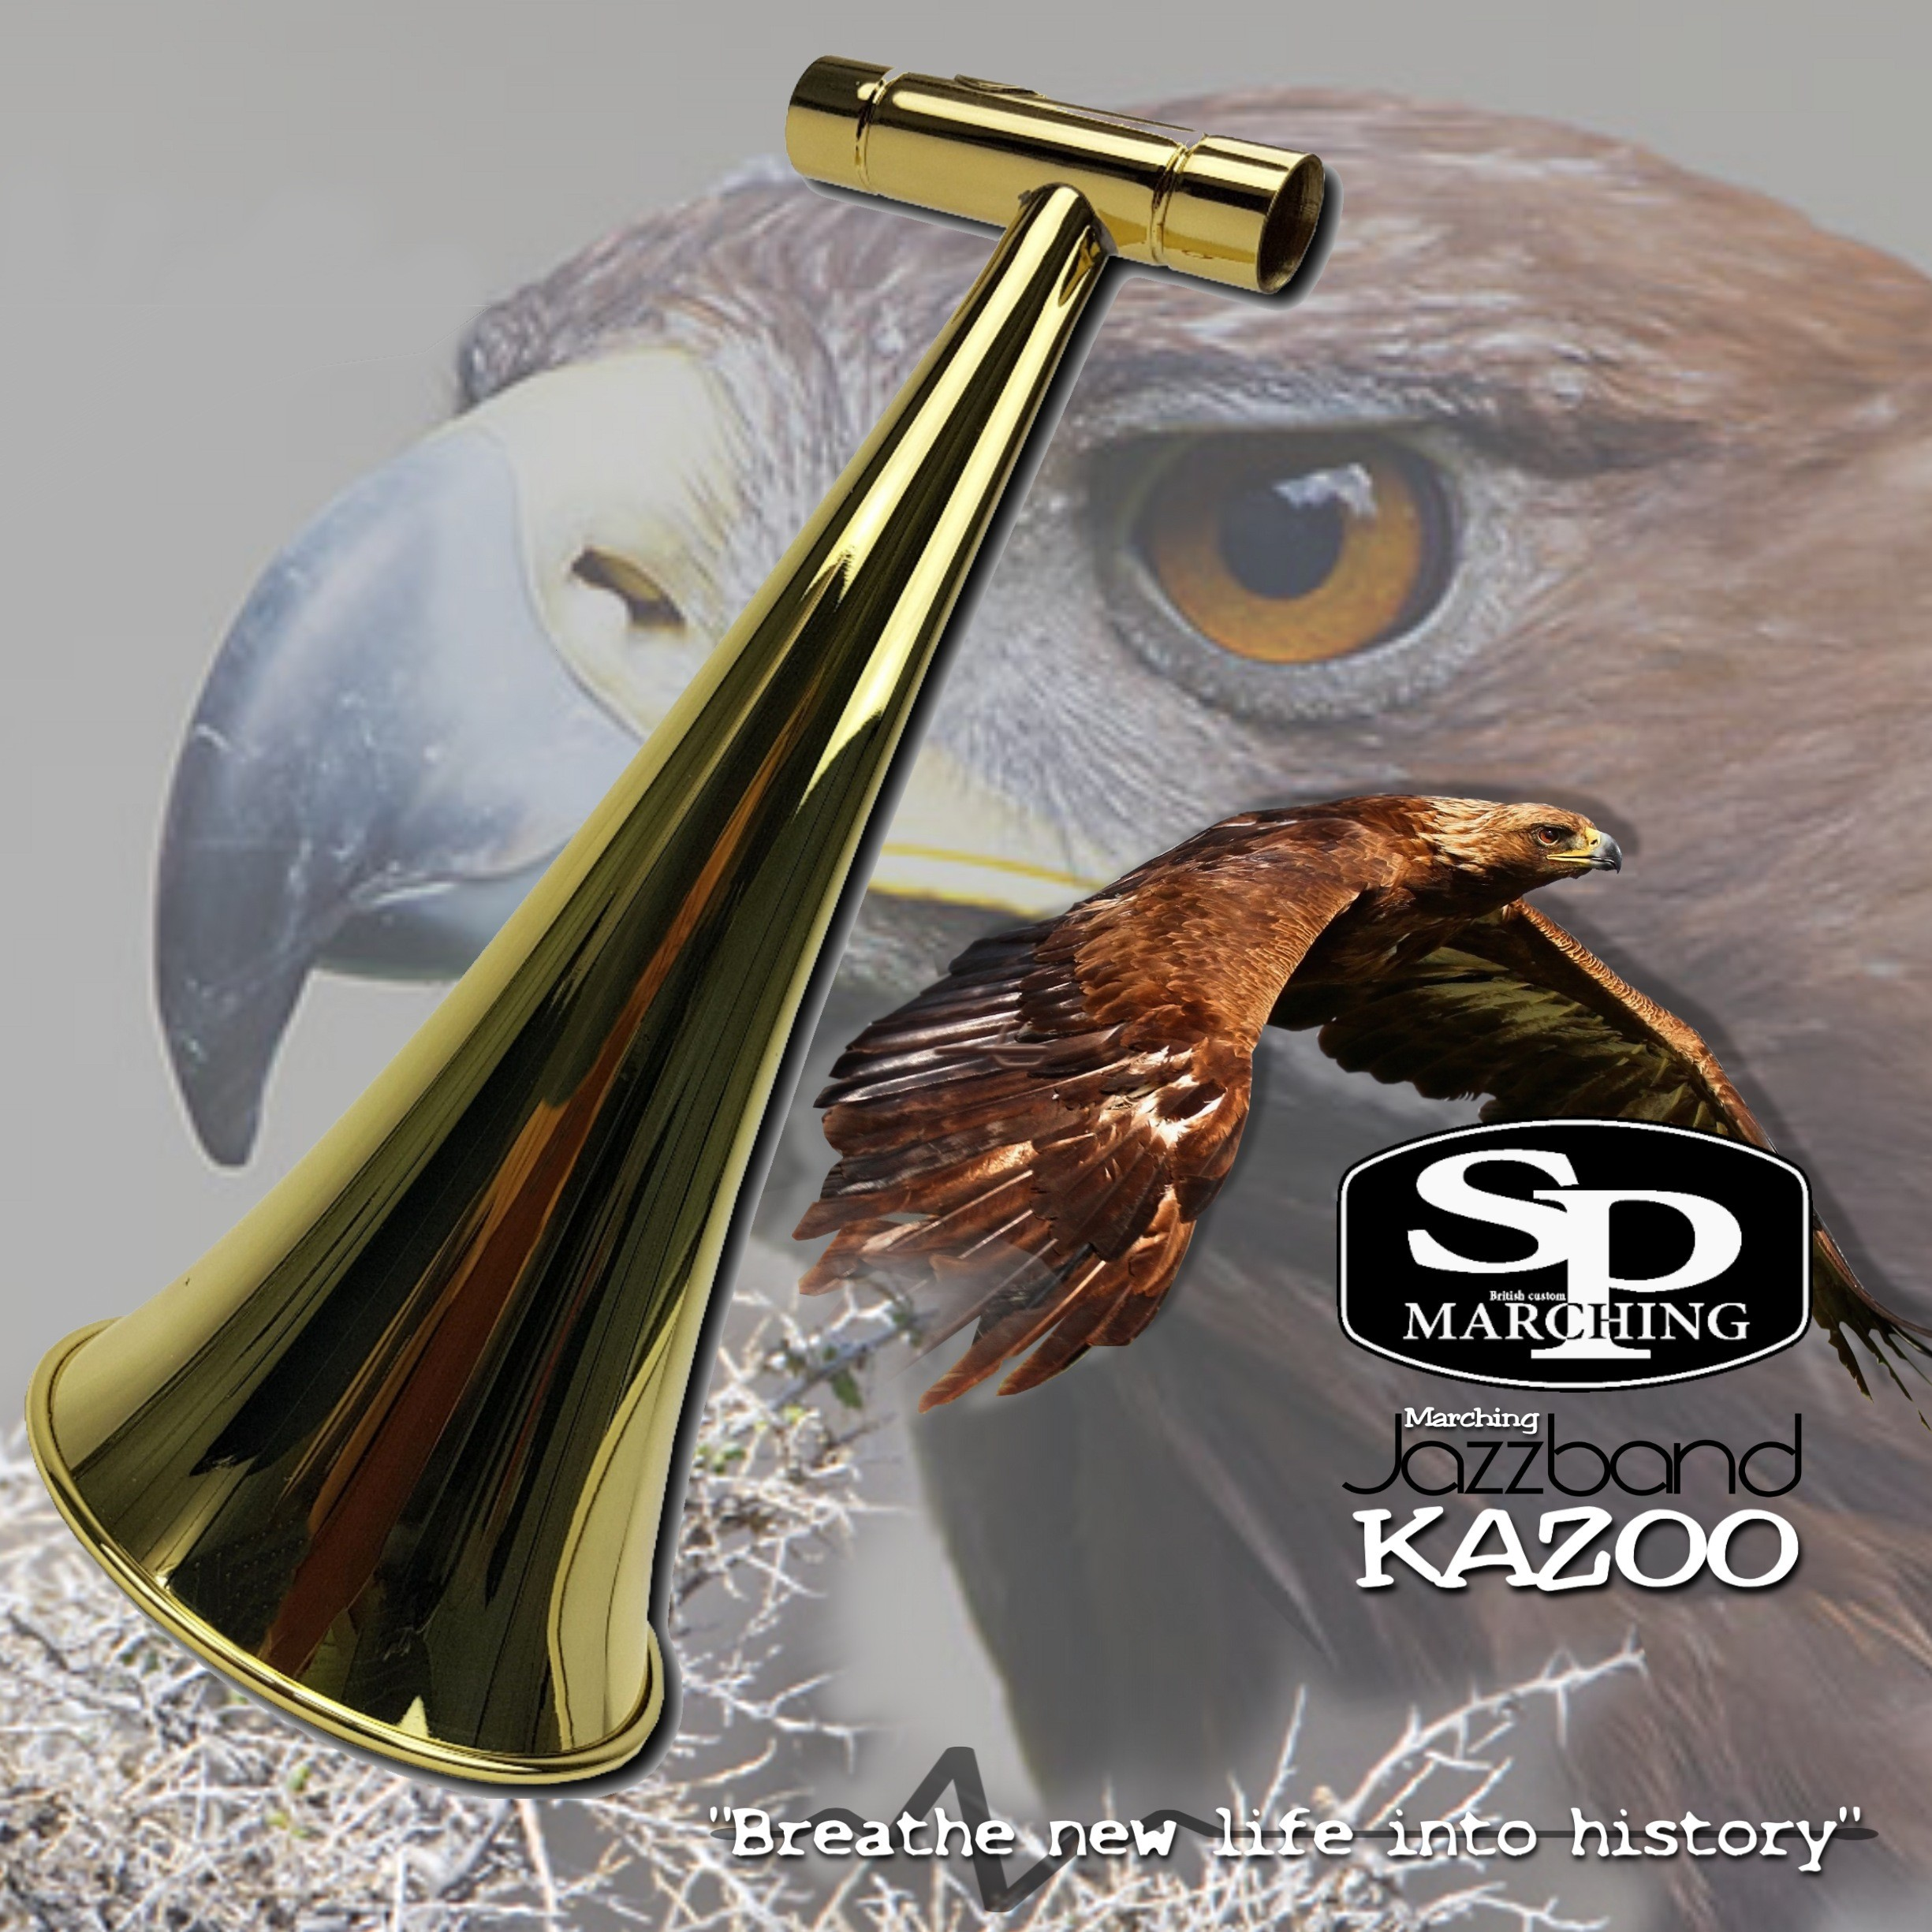 SP Marching Kazoo Eagle Transparent Lacquered